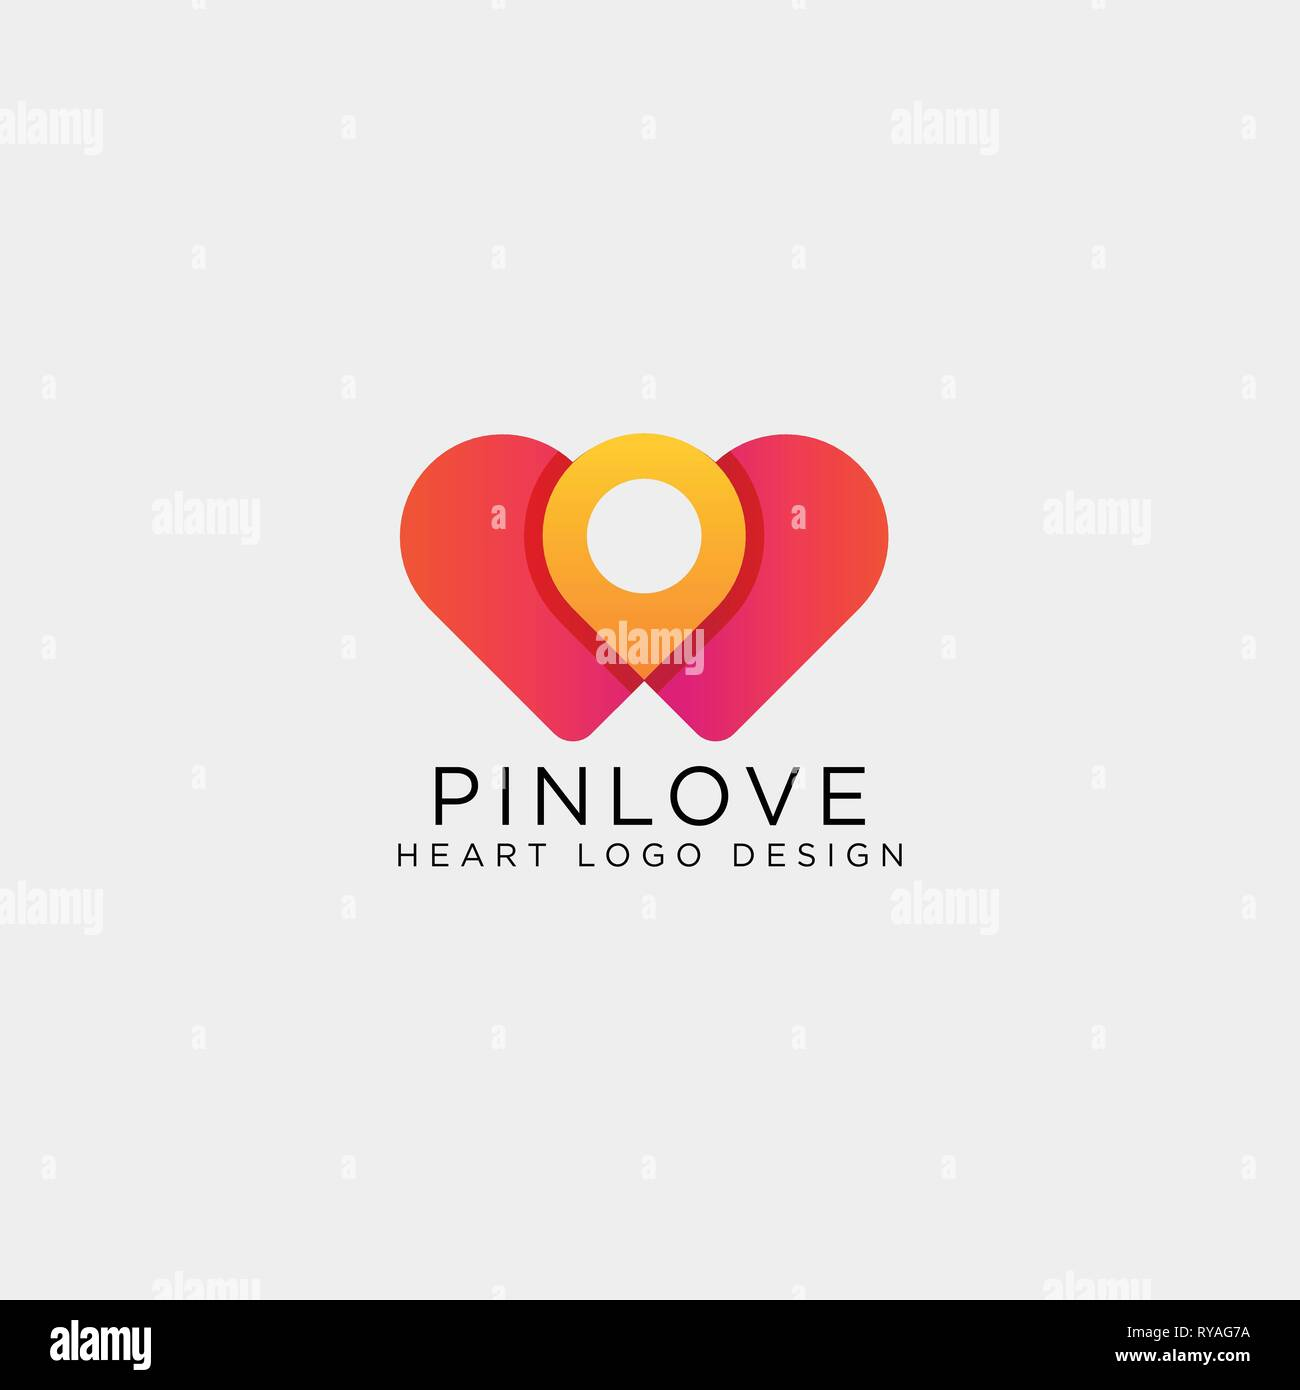 42da174296 love point location mark logo template vector illustration icon element  isolated - Stock Image